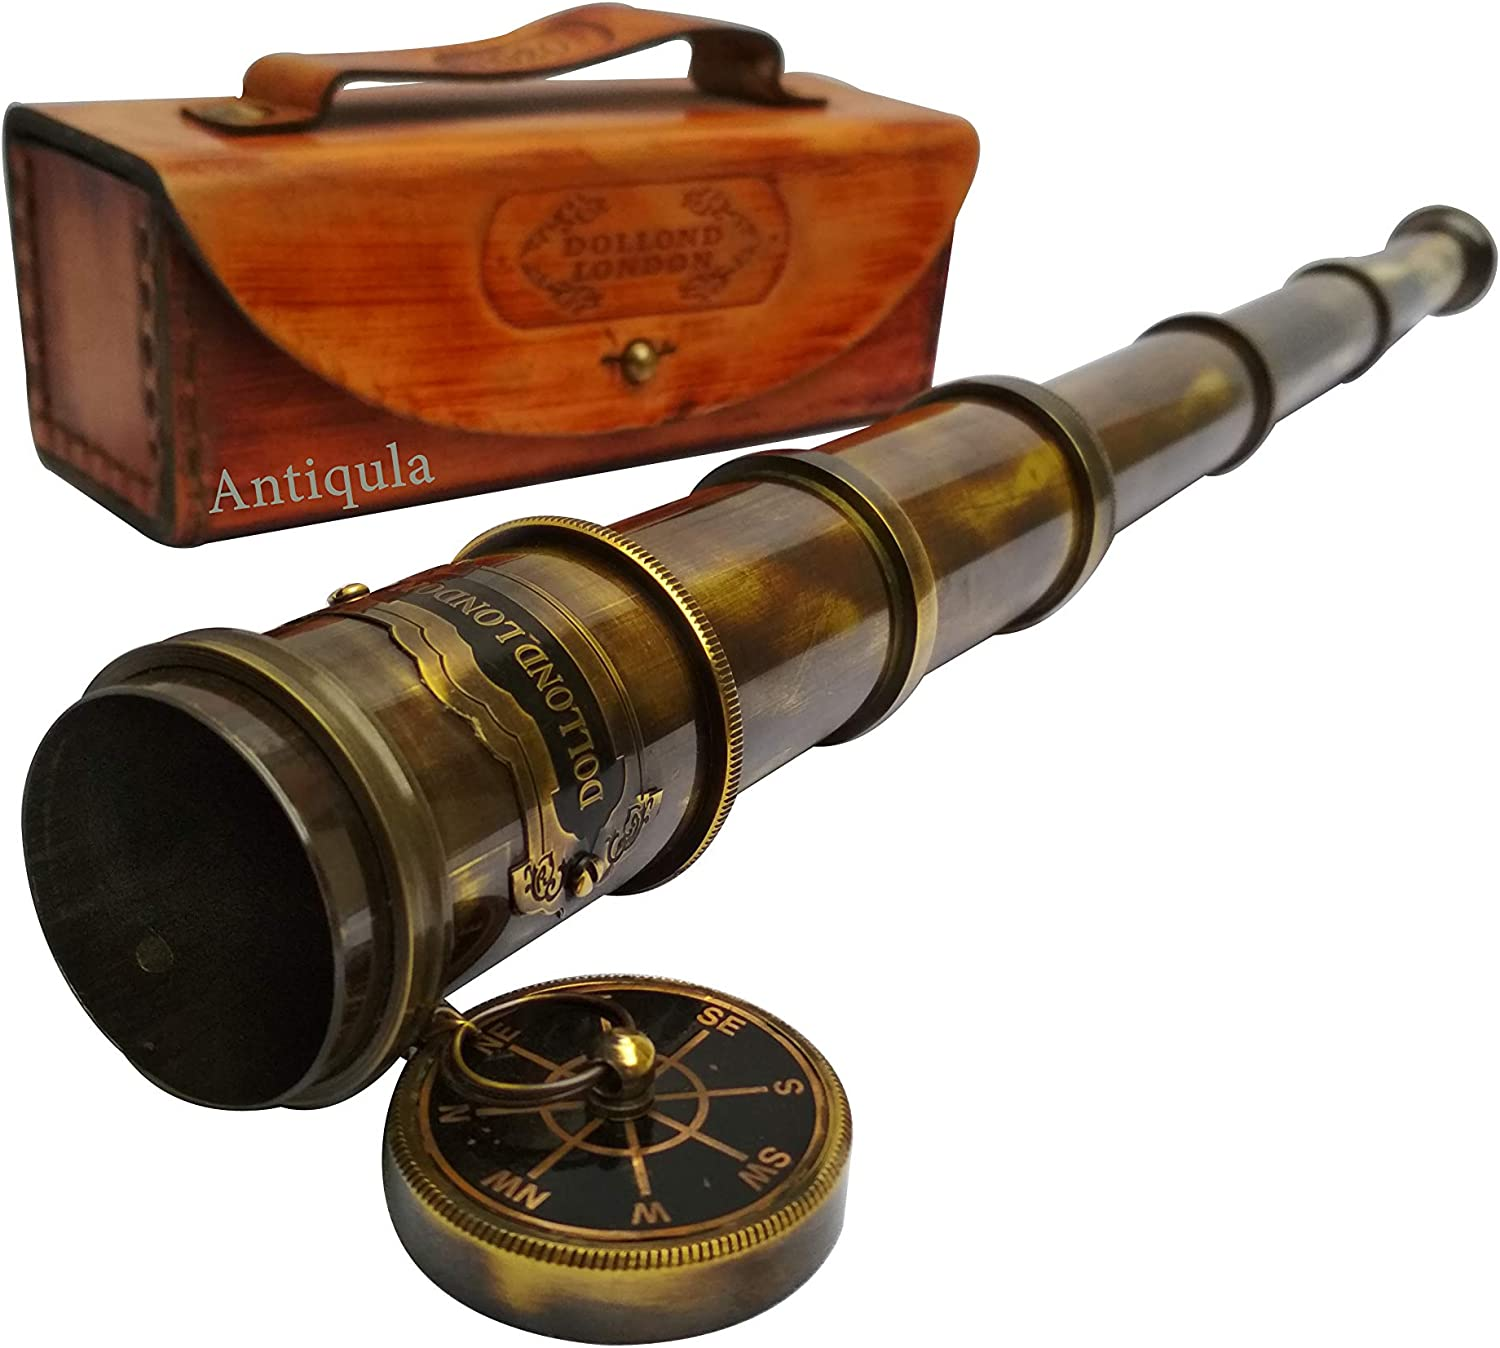 Antique Look Vintage 15 inches Dollond London Chain Telescope Royal Navy Decorative Christmas Helloween Thanksgiving Gift Item with Leather Case Home Decor Toy Gift Pirate Navigation